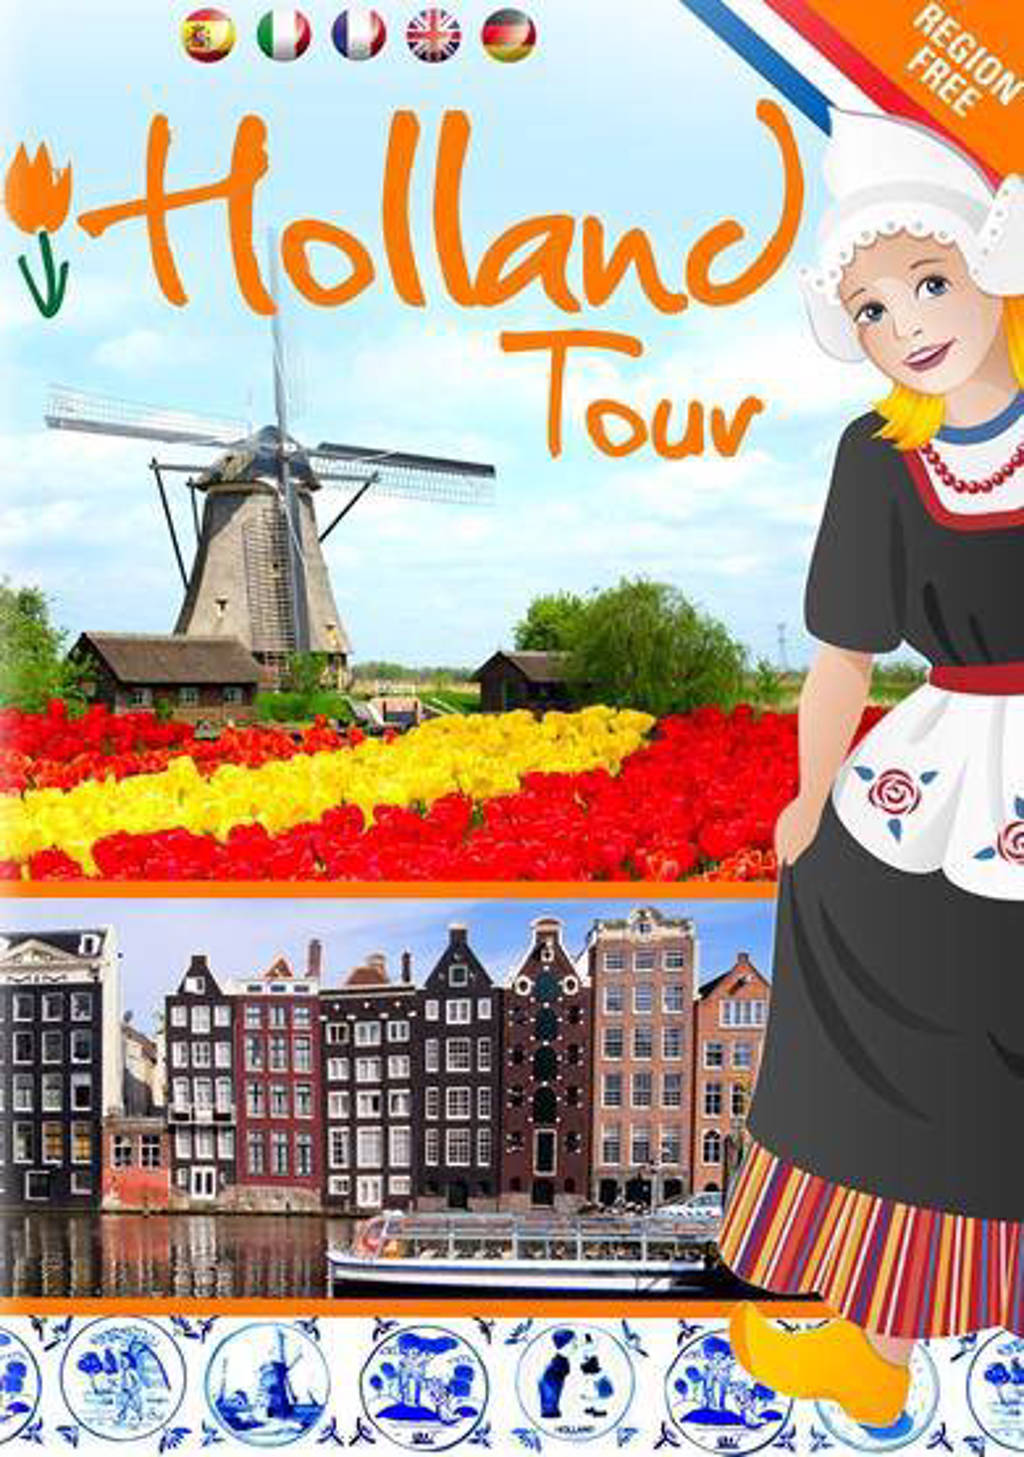 Holland tour (DVD)